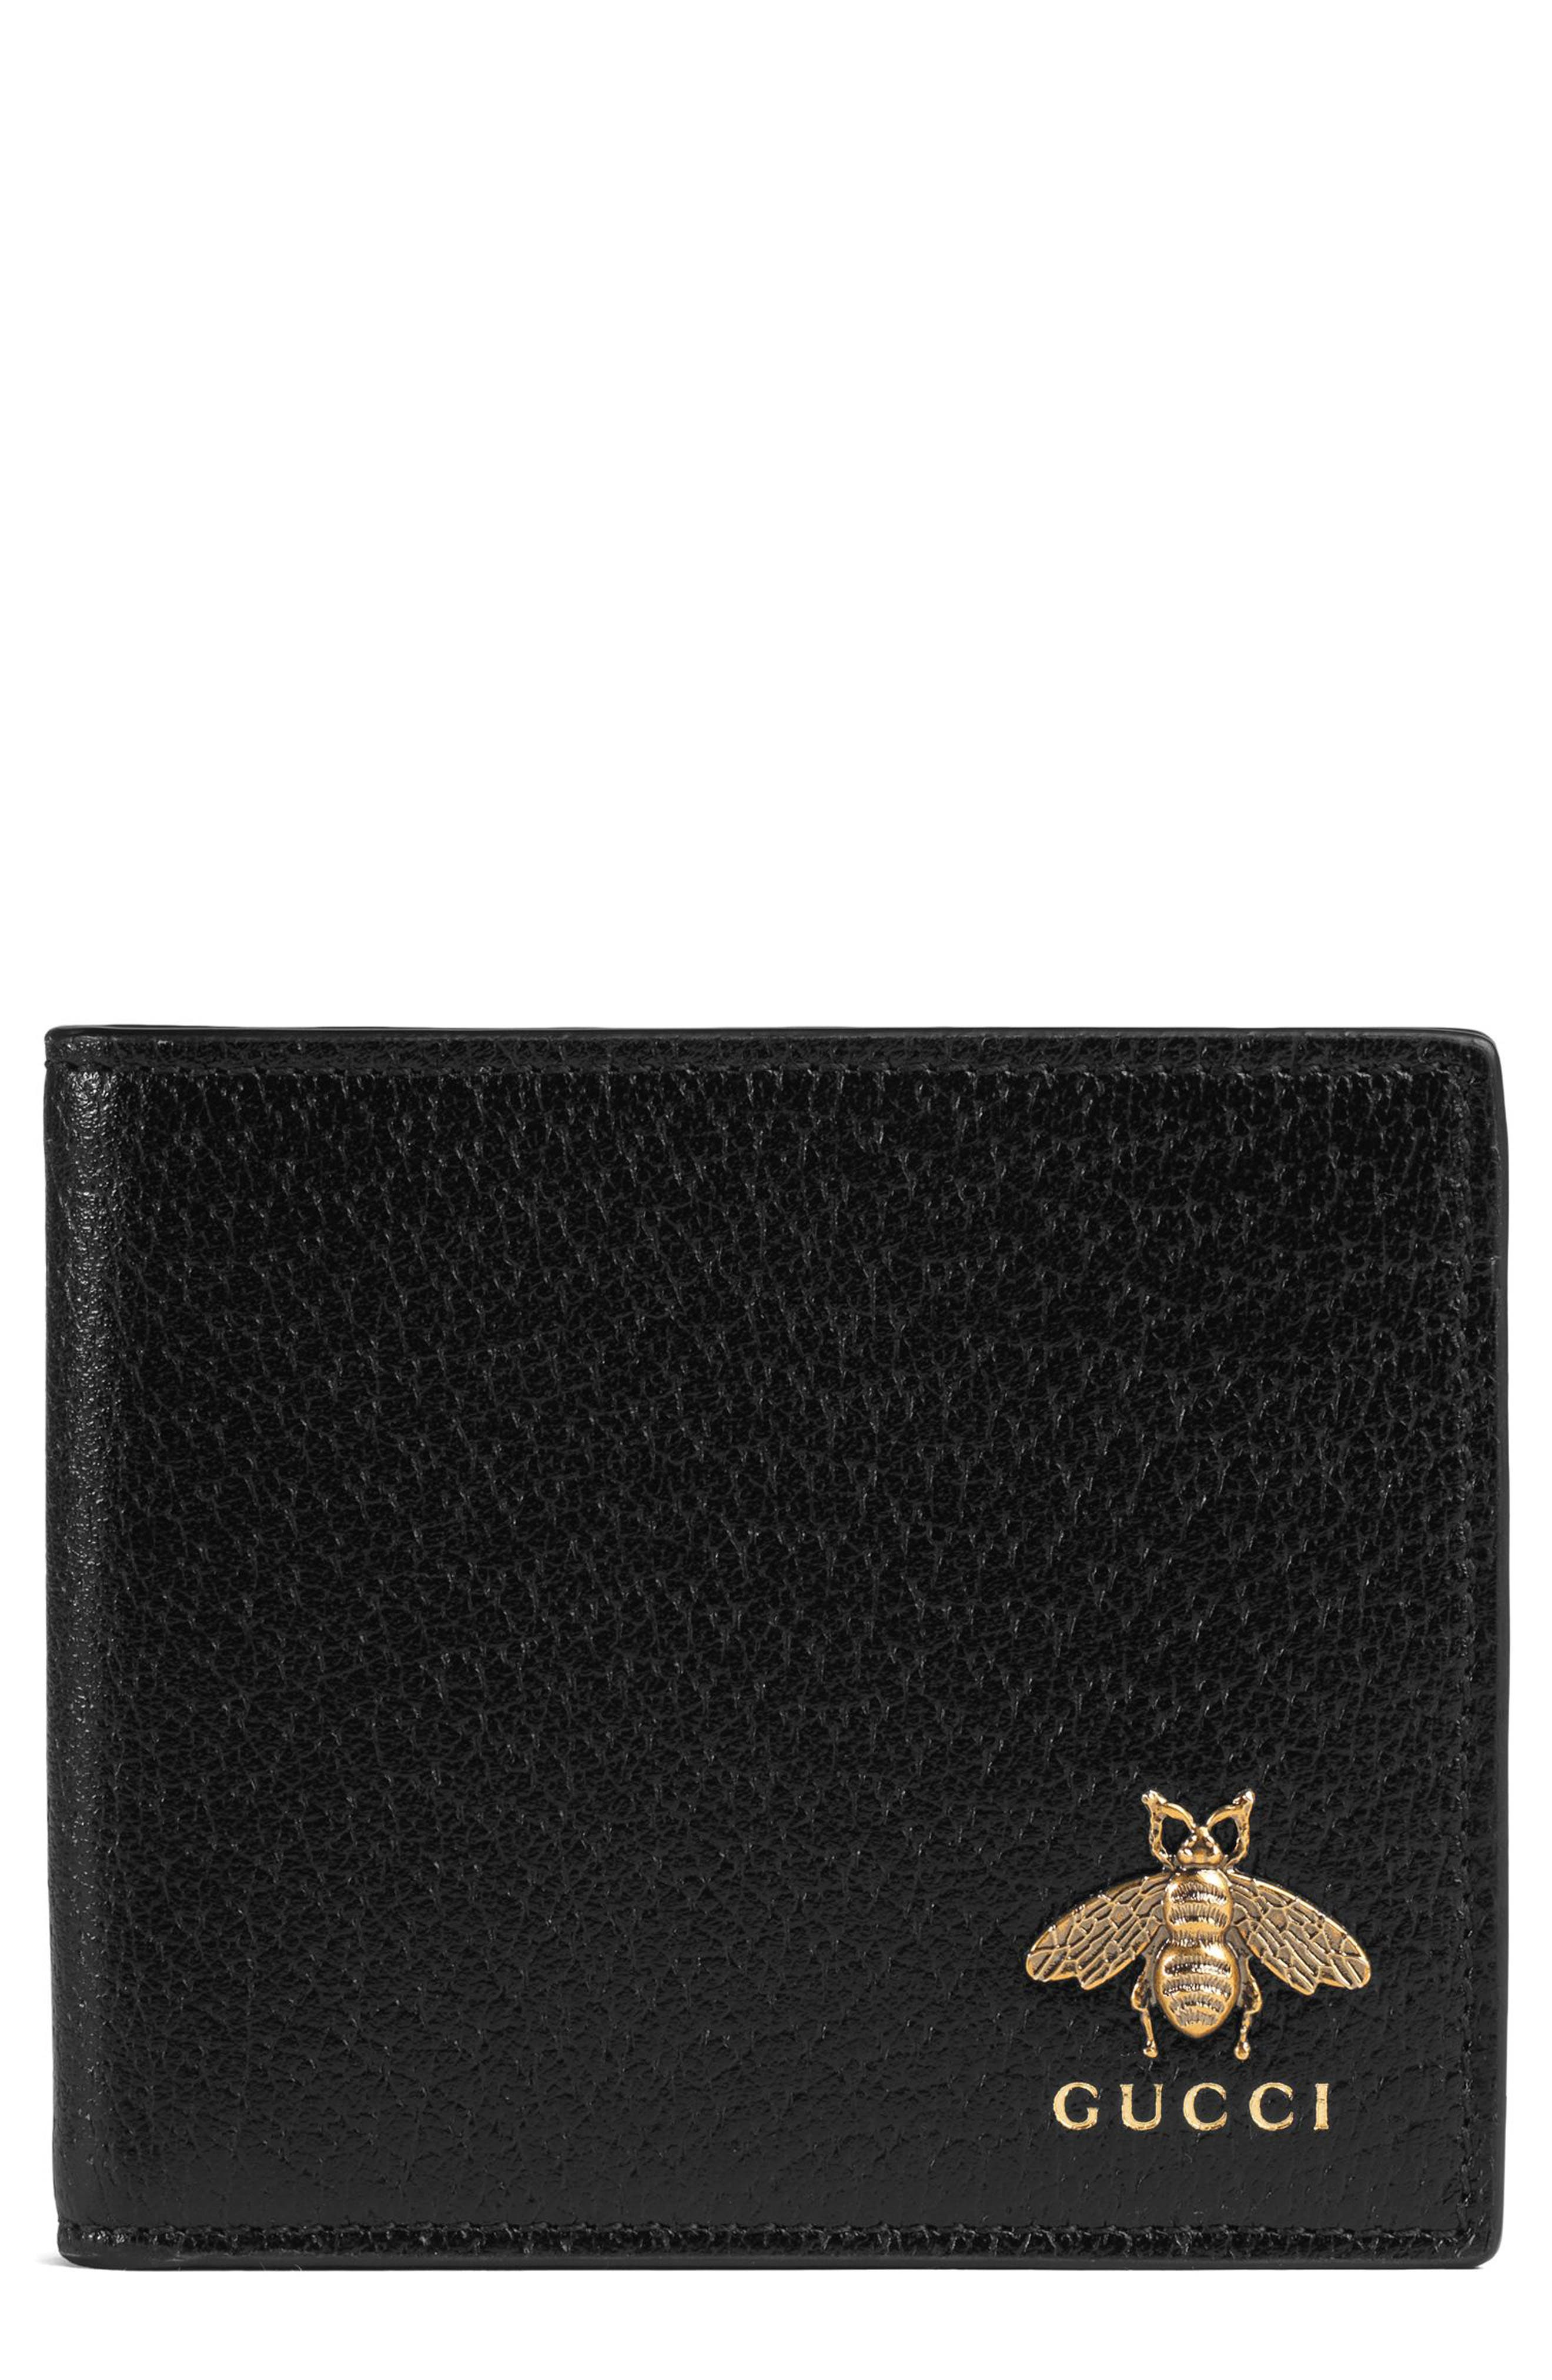 Gucci Metallic Bee Leather Wallet